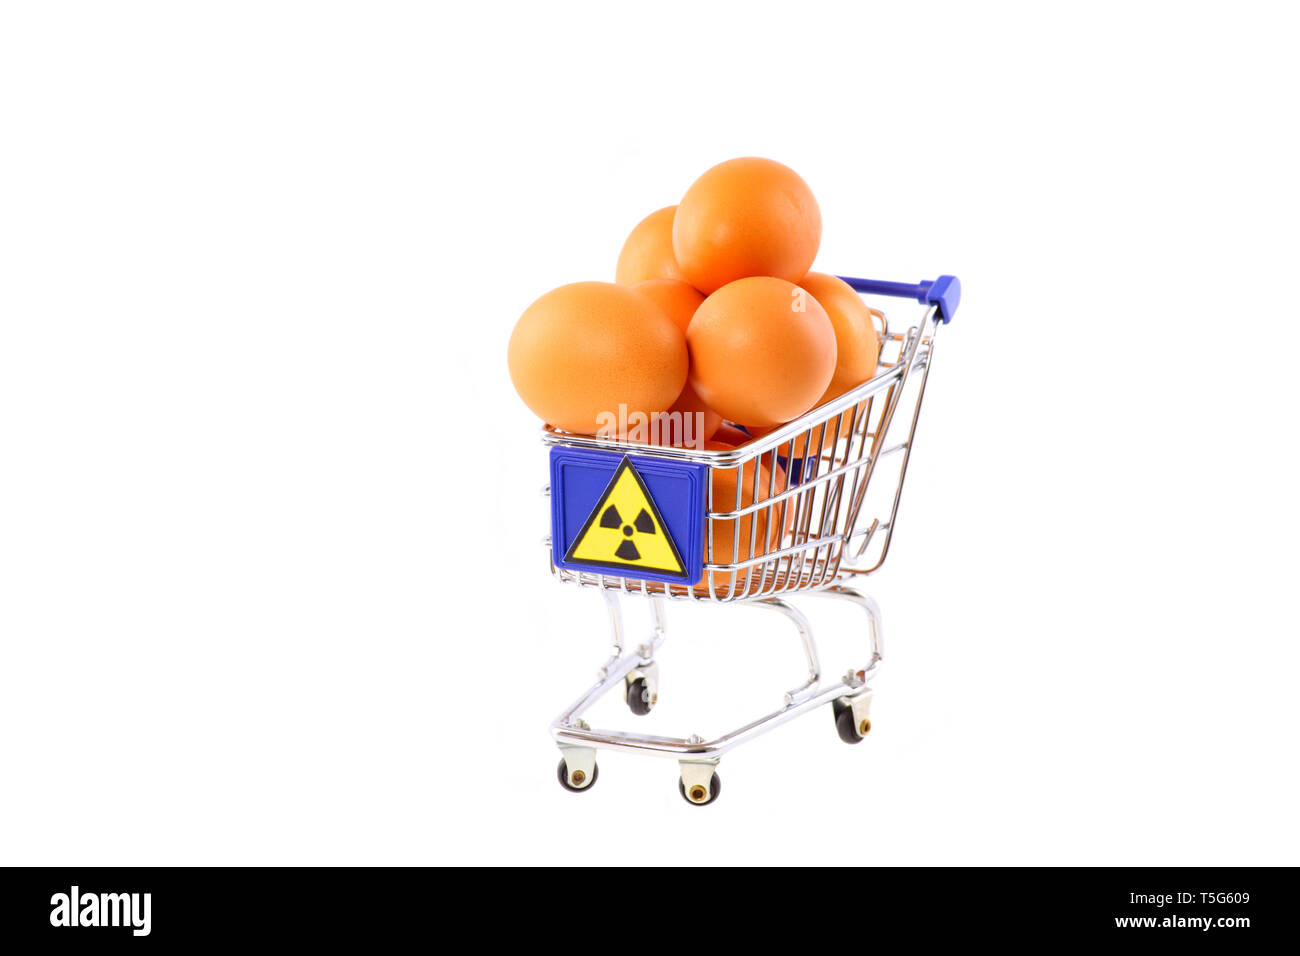 Radioactive contaminated eggs in a shopping cart - isolated - Stock Image